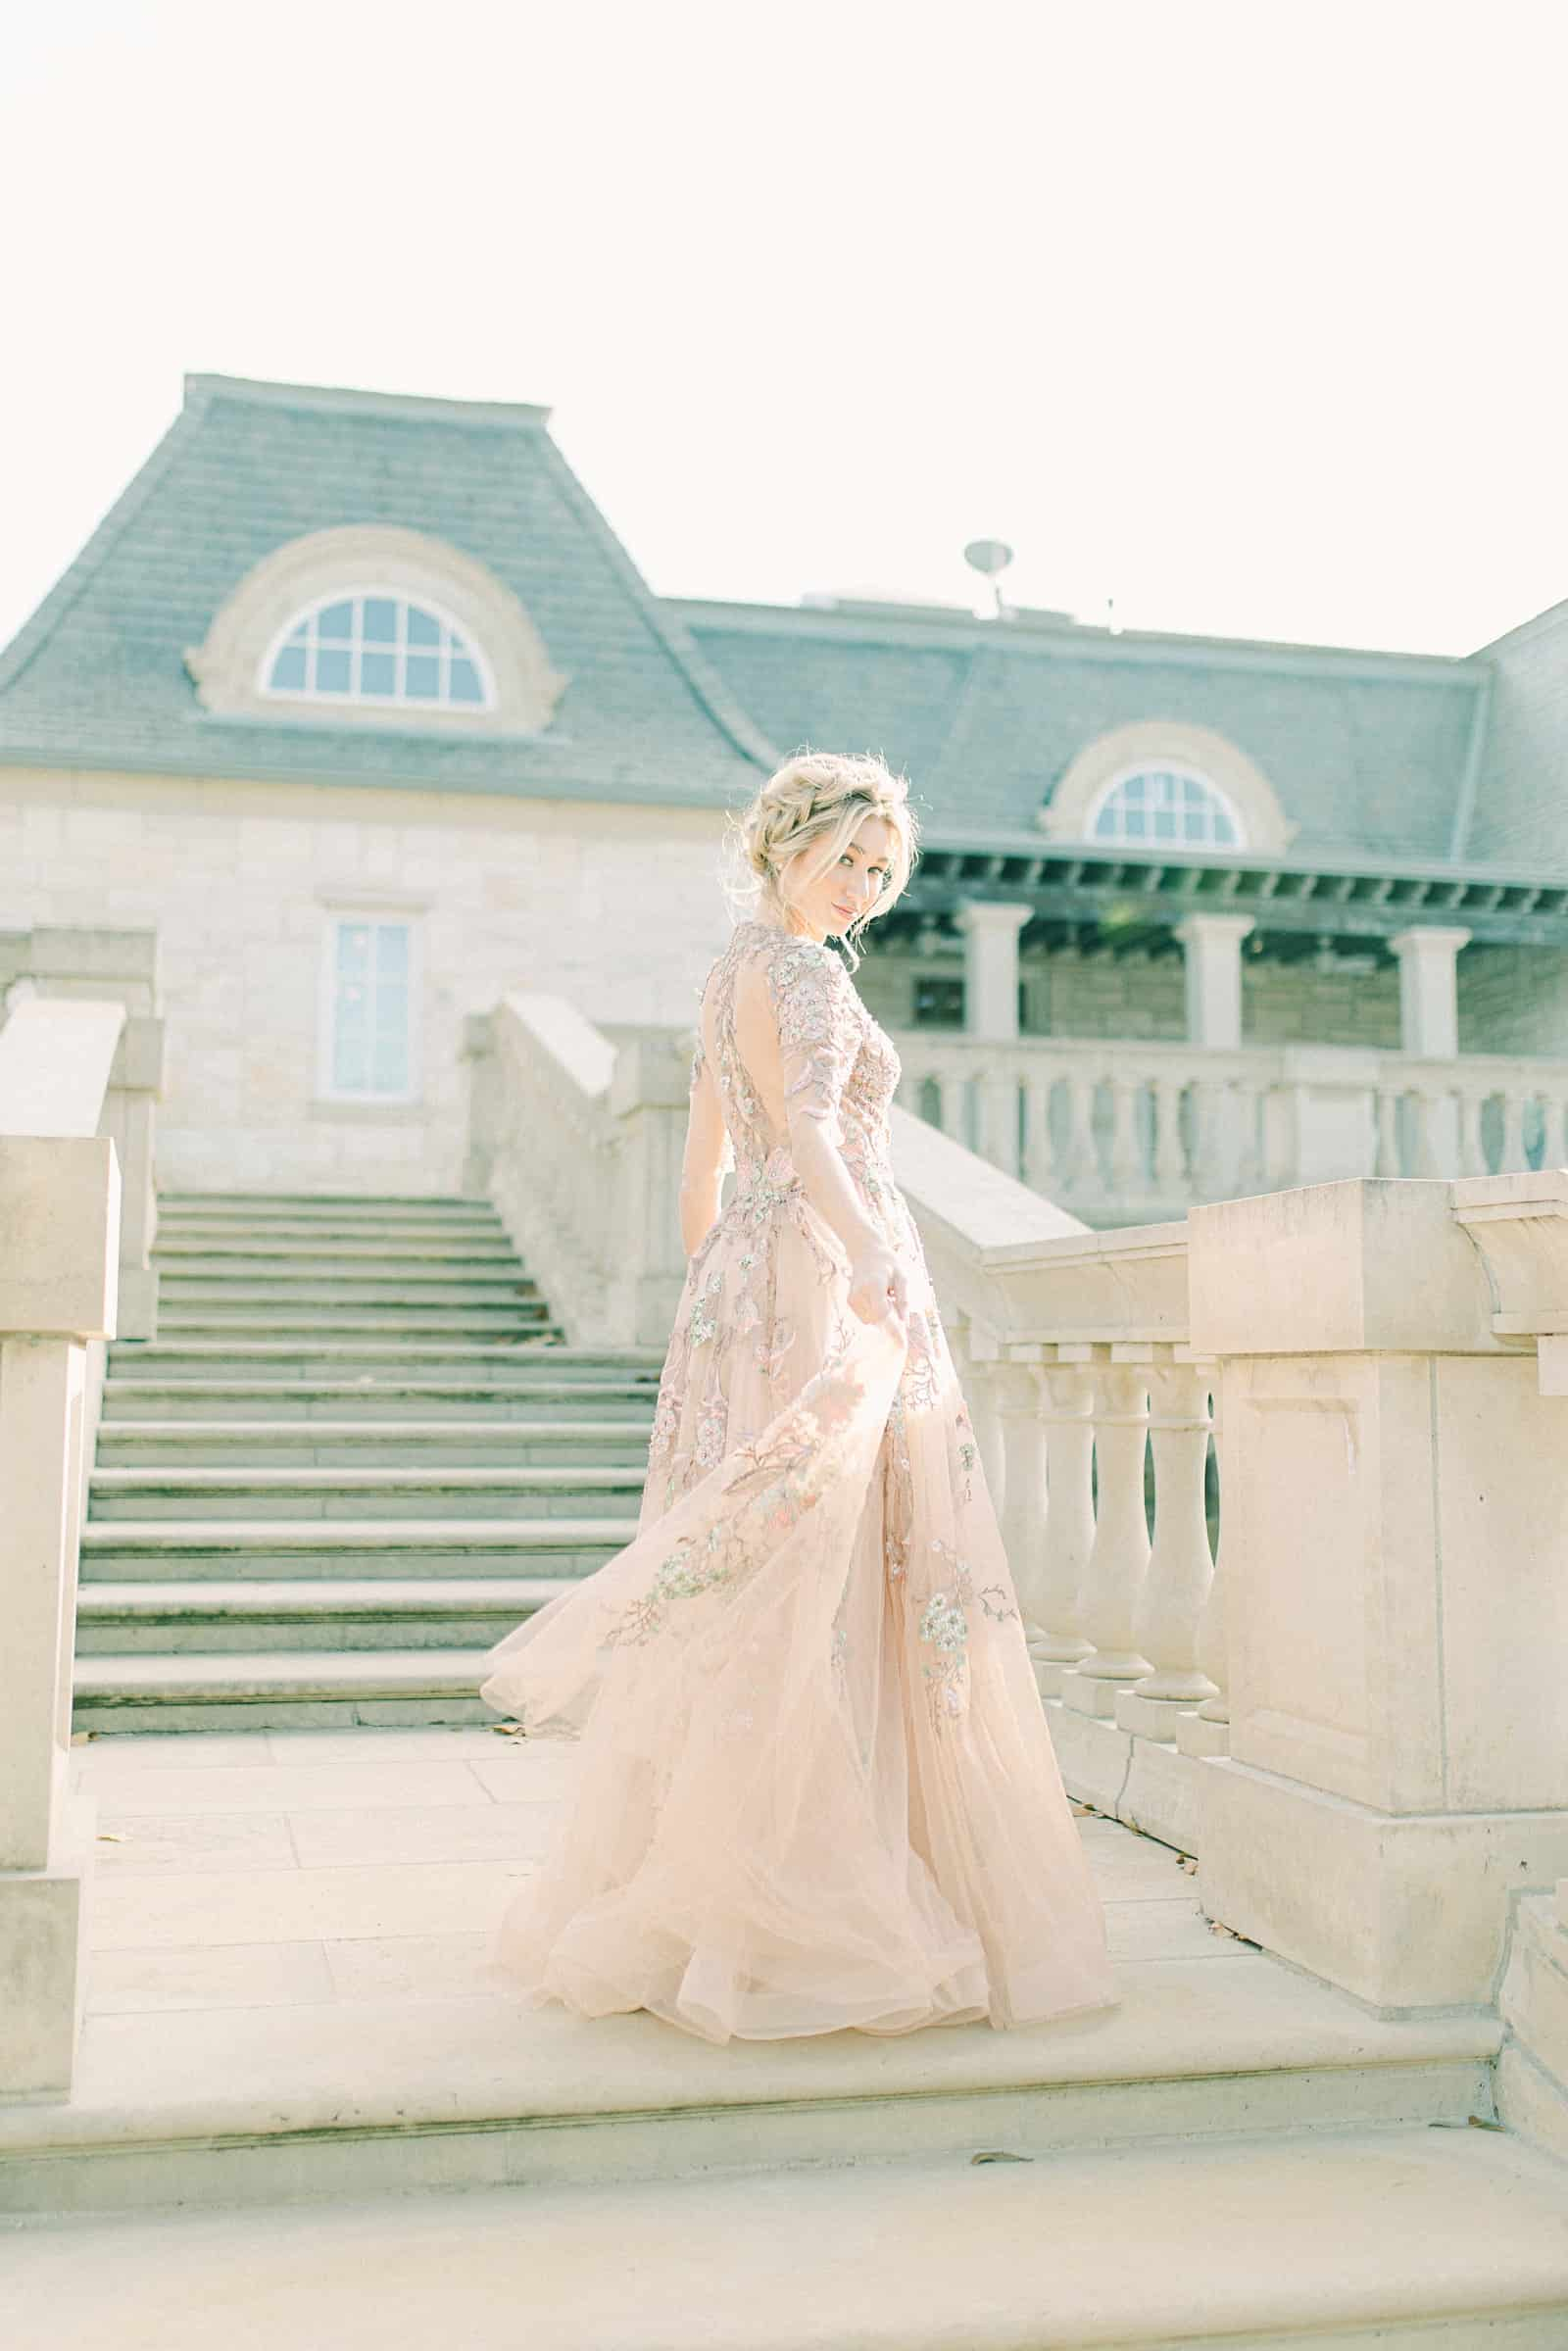 Bride walking down staircase wearing YSA Makino couture wedding dress with floral embellishments and embroidery, flowy wedding dress